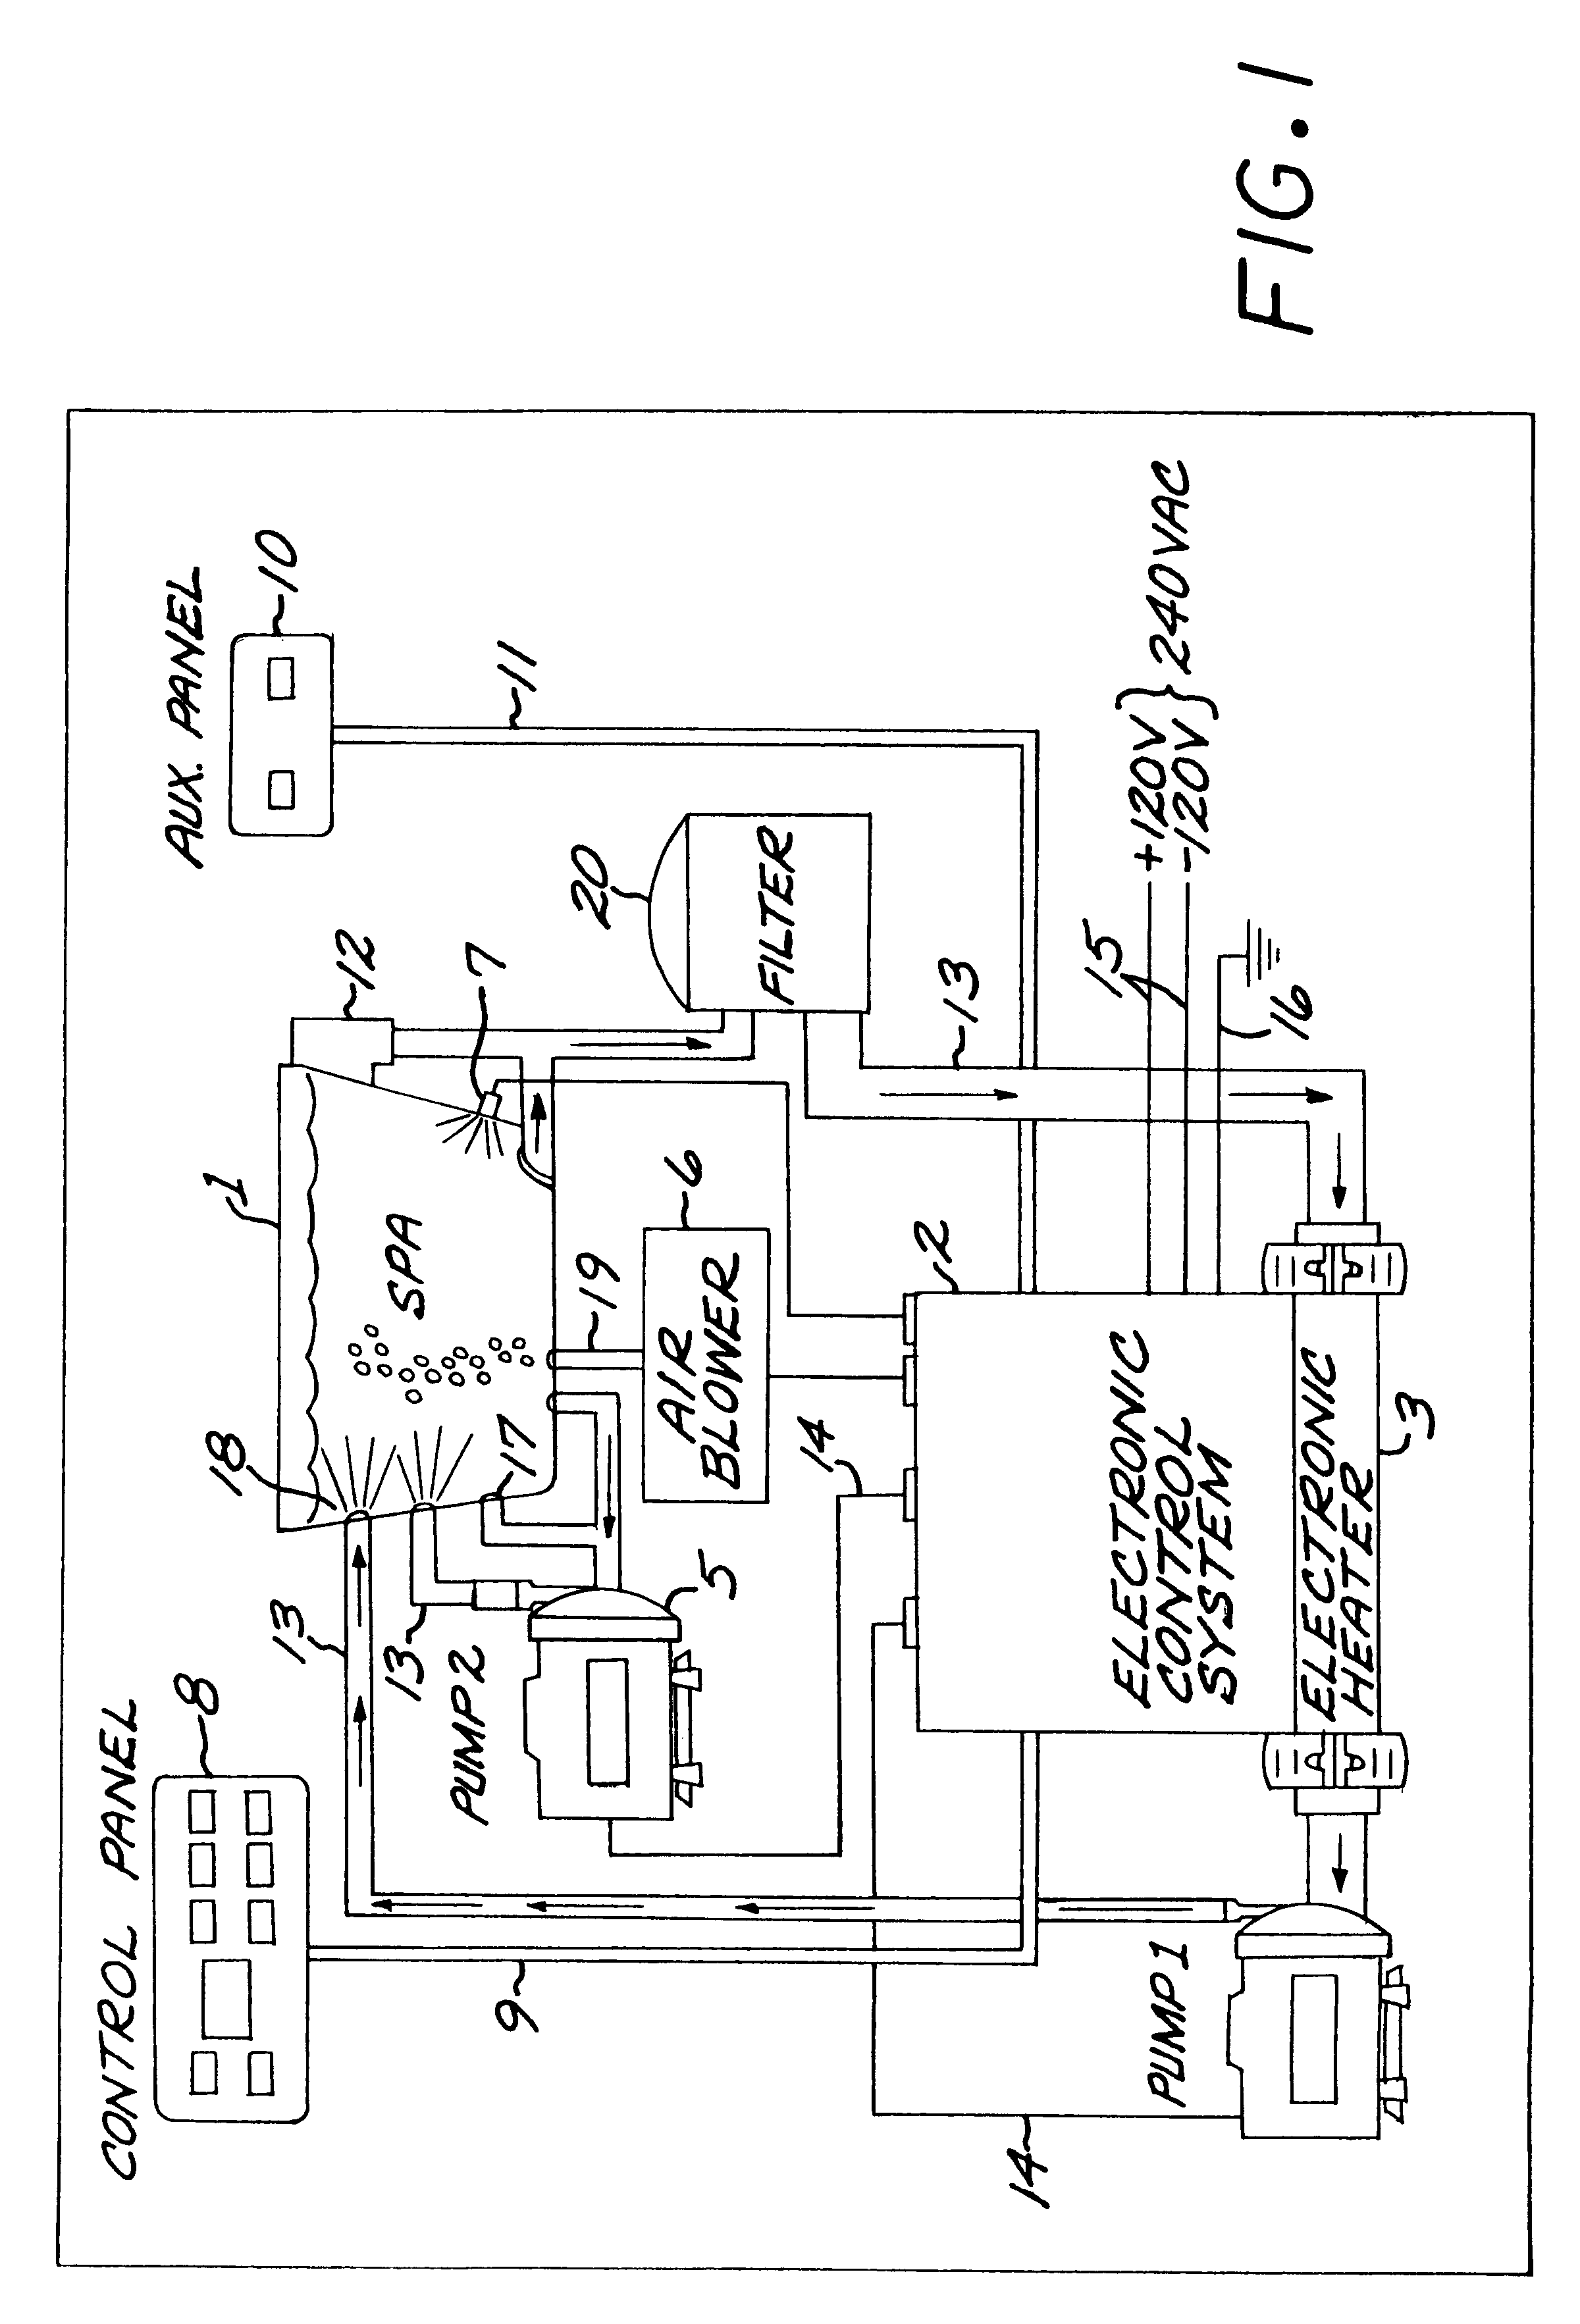 Jacuzzi Piping Diagram Best Wiring Library Outlet Hot Tub Electrical Diagrams Softub Third Level Rh 17 19 13 Jacobwinterstein Com Pipe